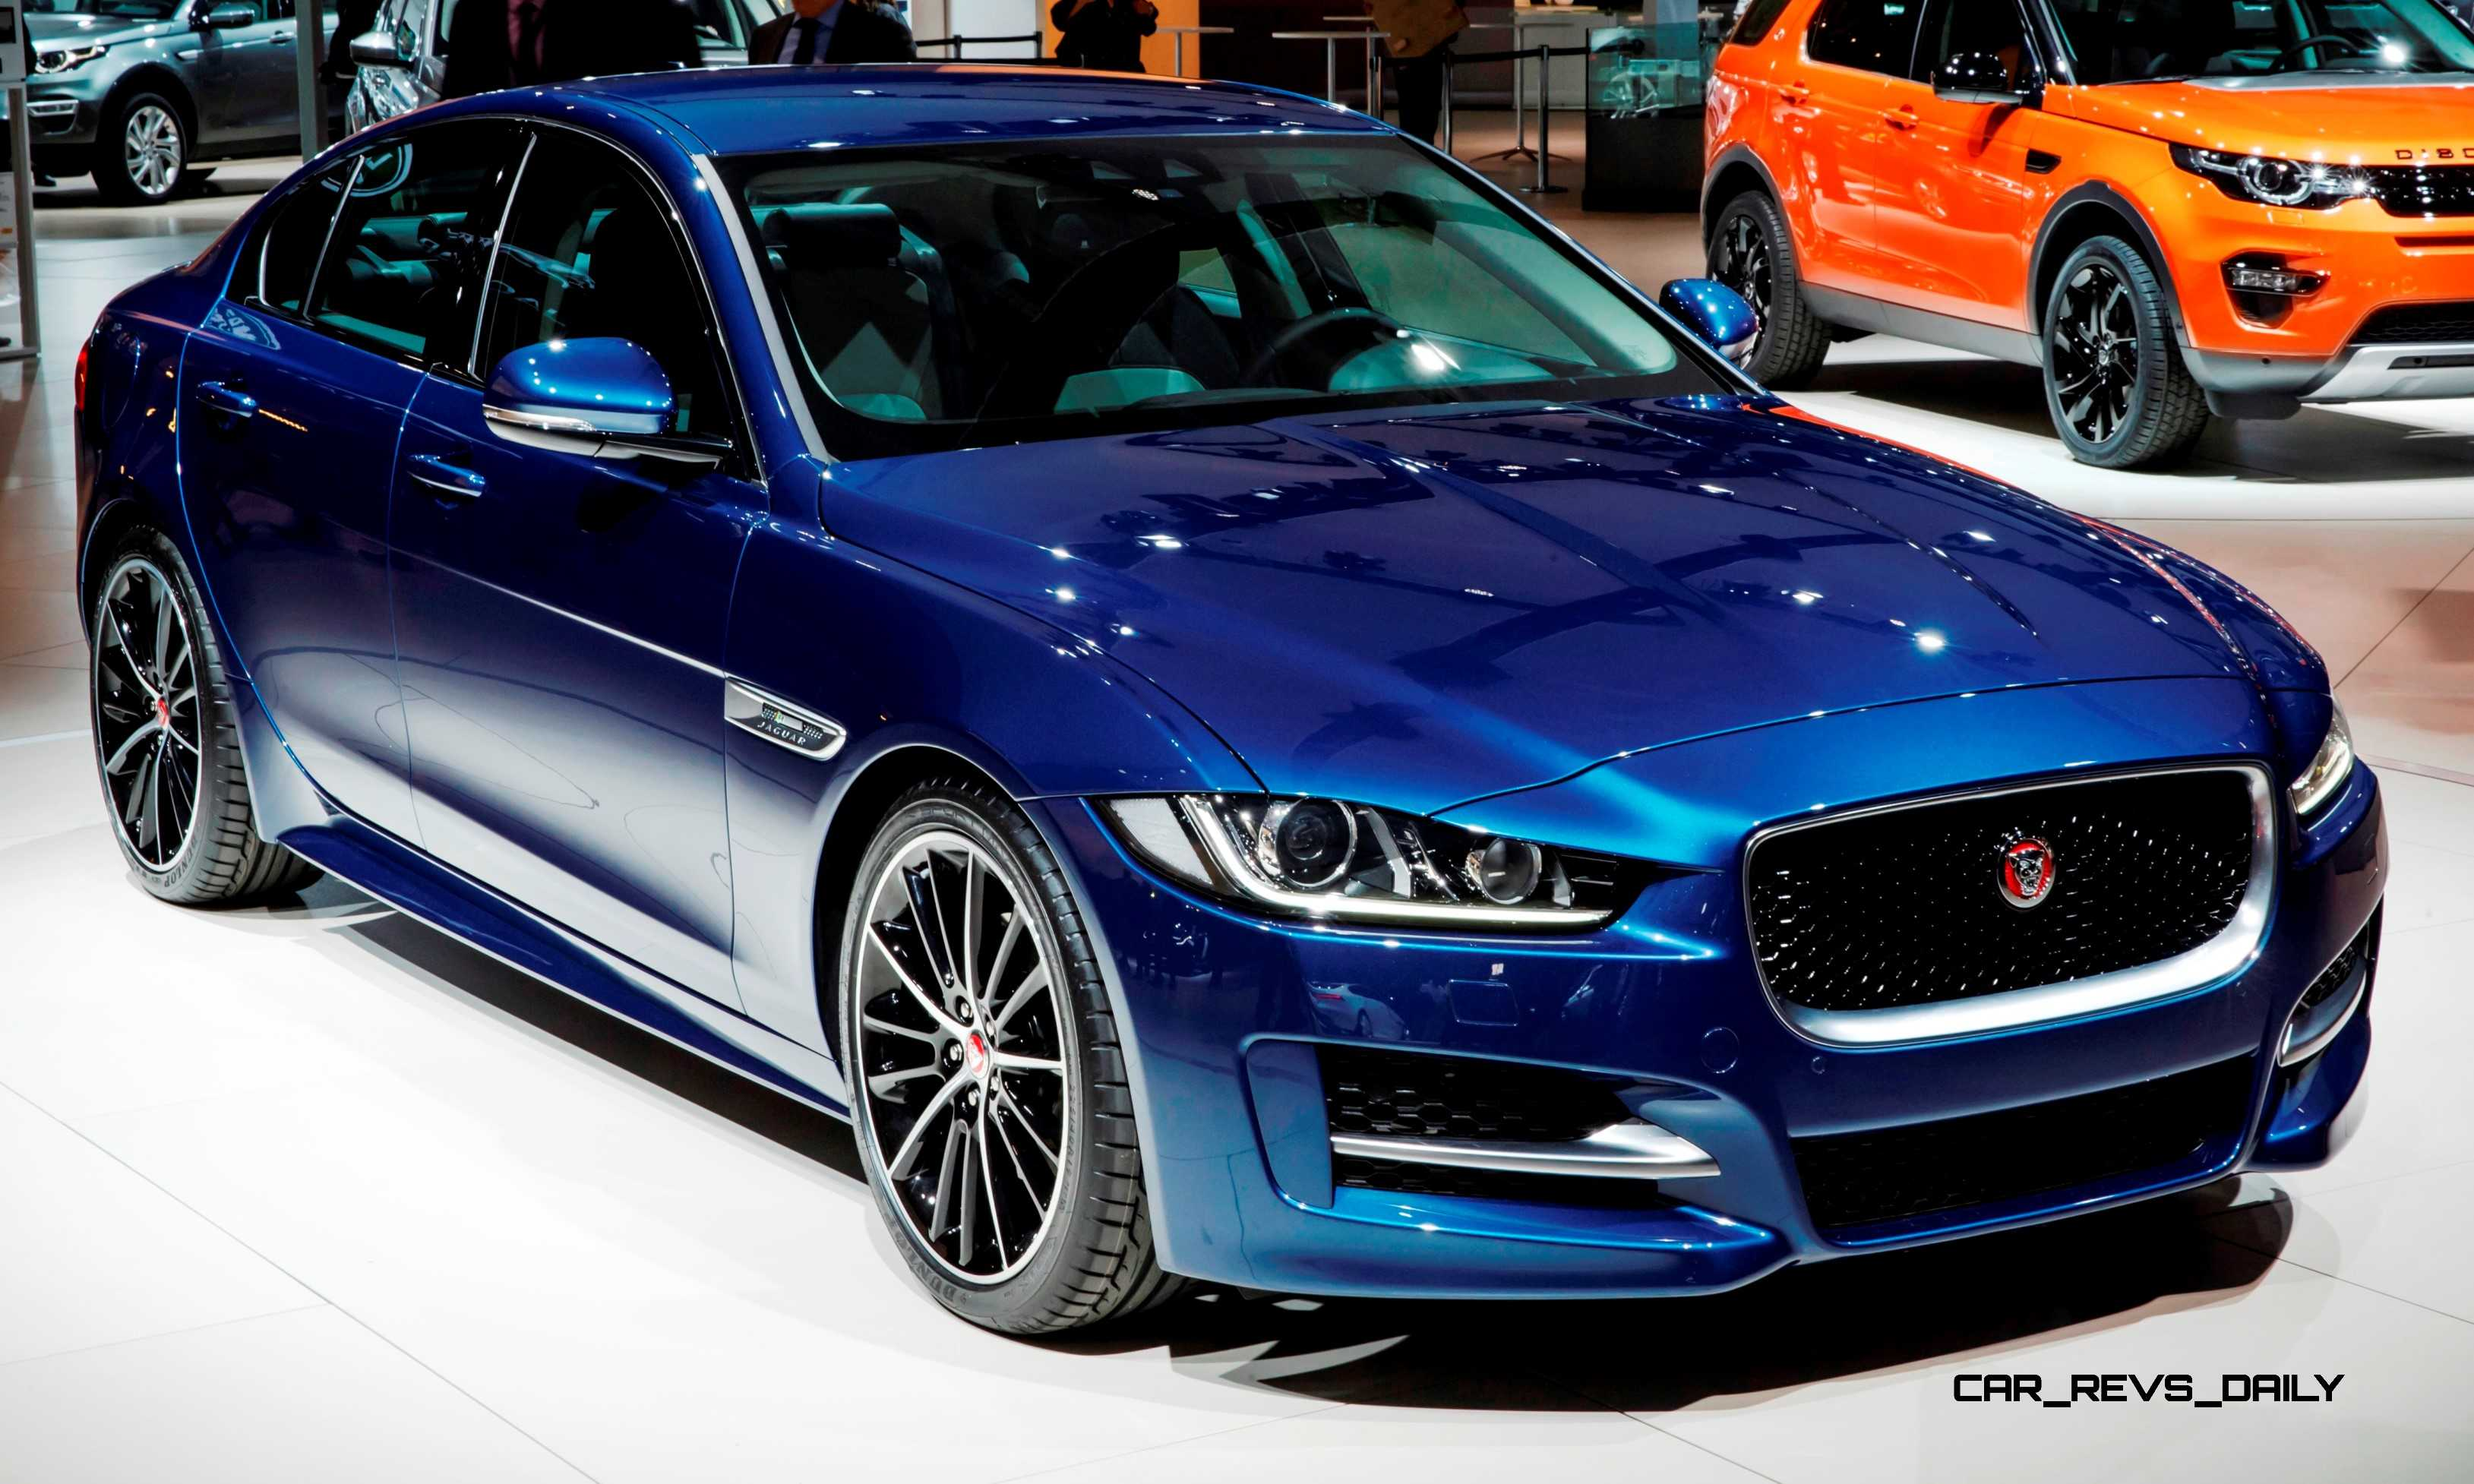 2016 JAGUAR XE Configurator Is Live! Buyers Guide To ...